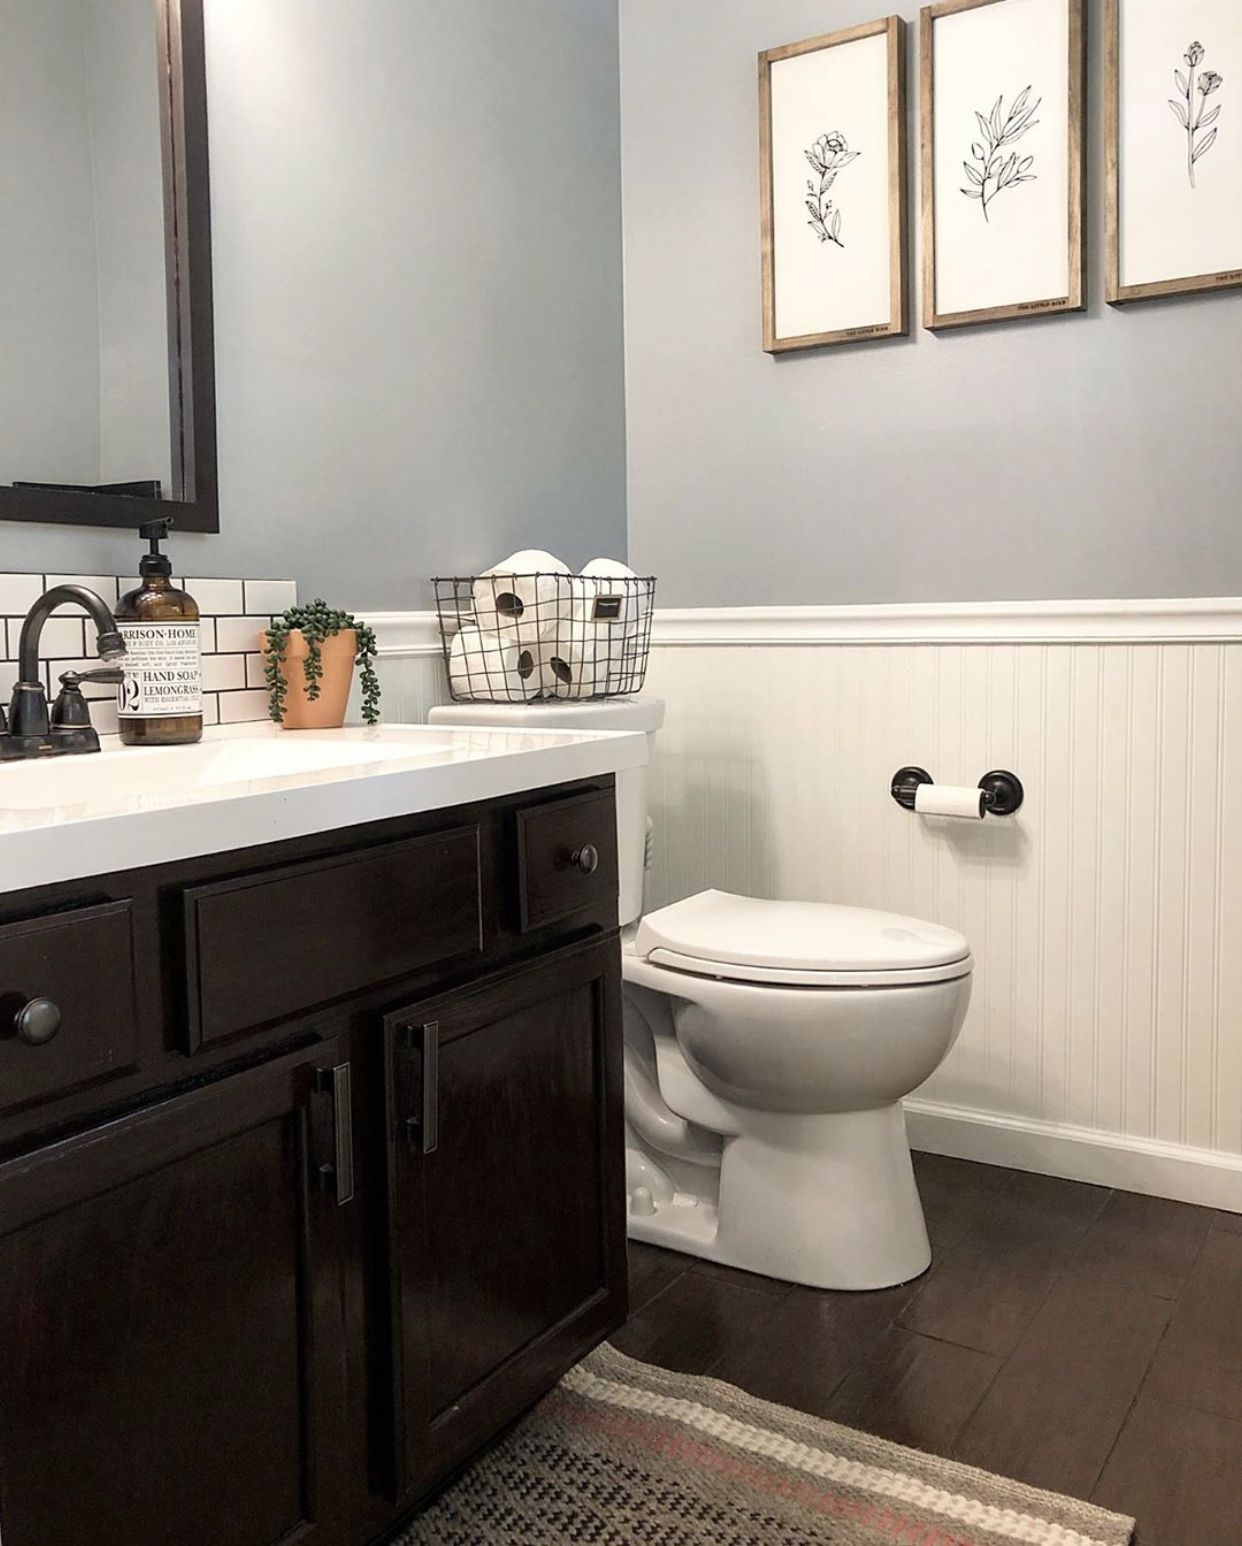 Picture From Instagram Ourhavenbliss Paint Color Sherwin Williams Online Sherwin Williams Paint Colors Guest Bathroom Small Guest Bathroom Remodel